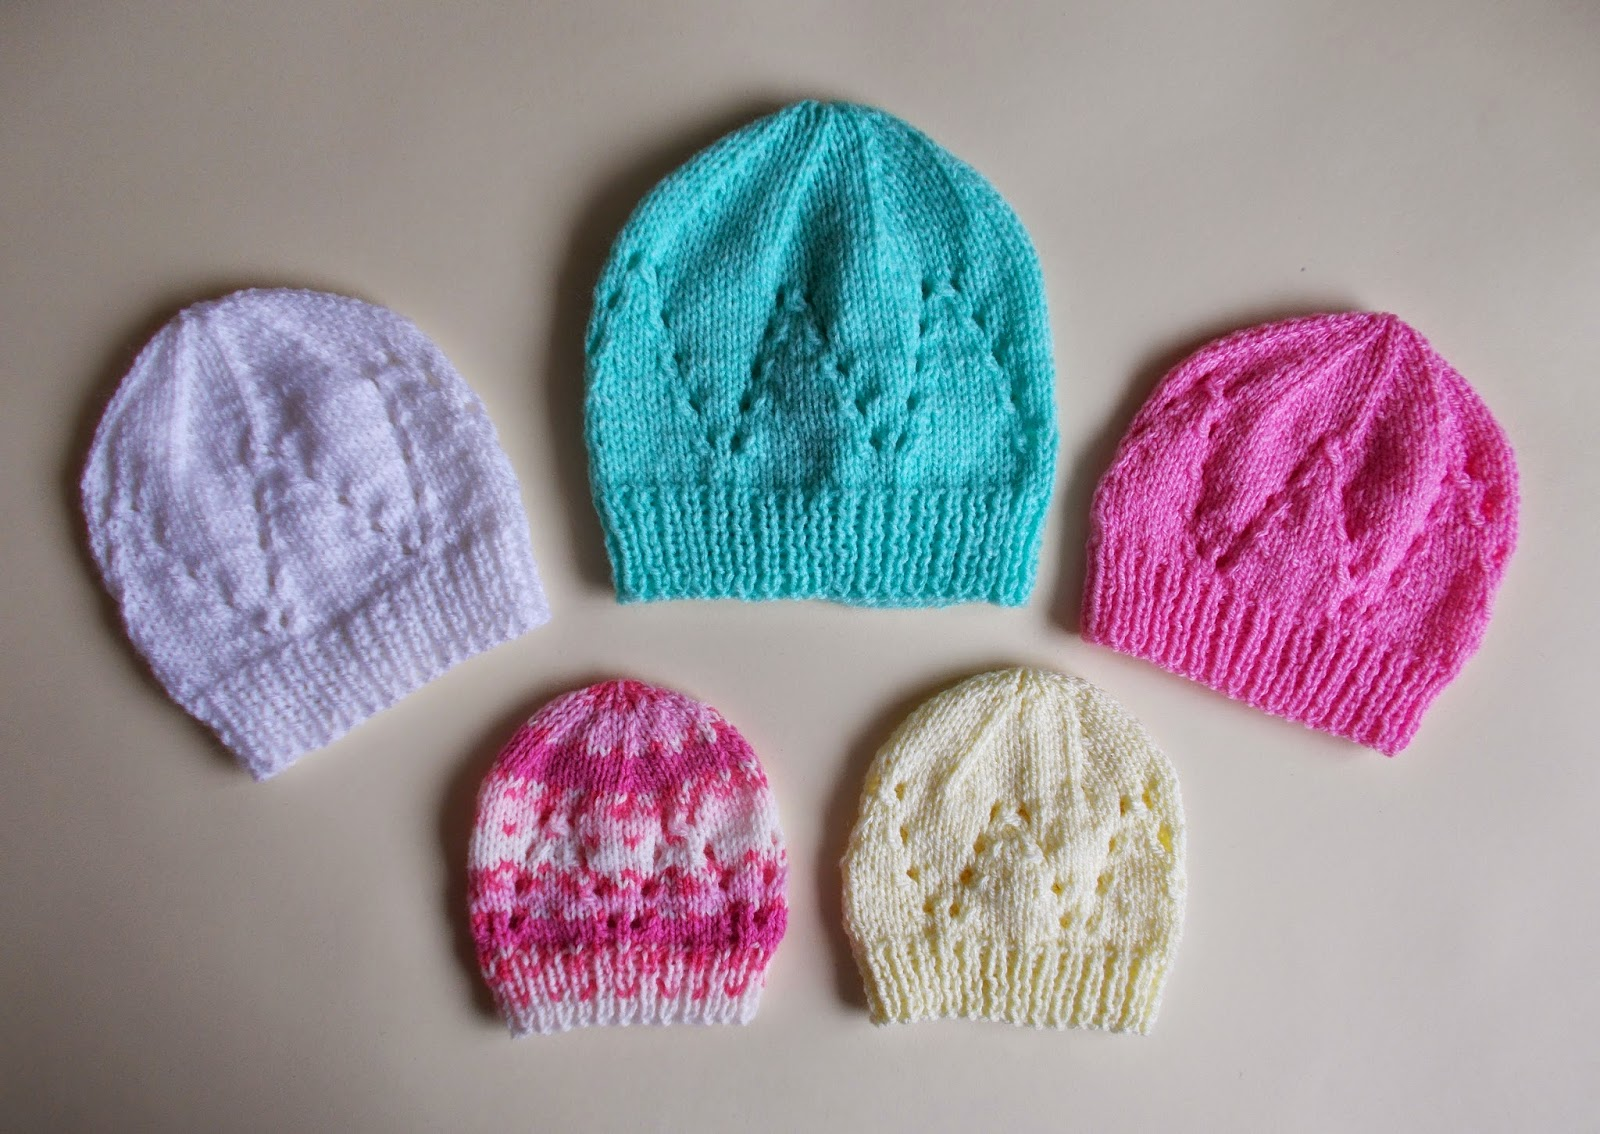 made-by-marianna: My Free Knitting Patterns